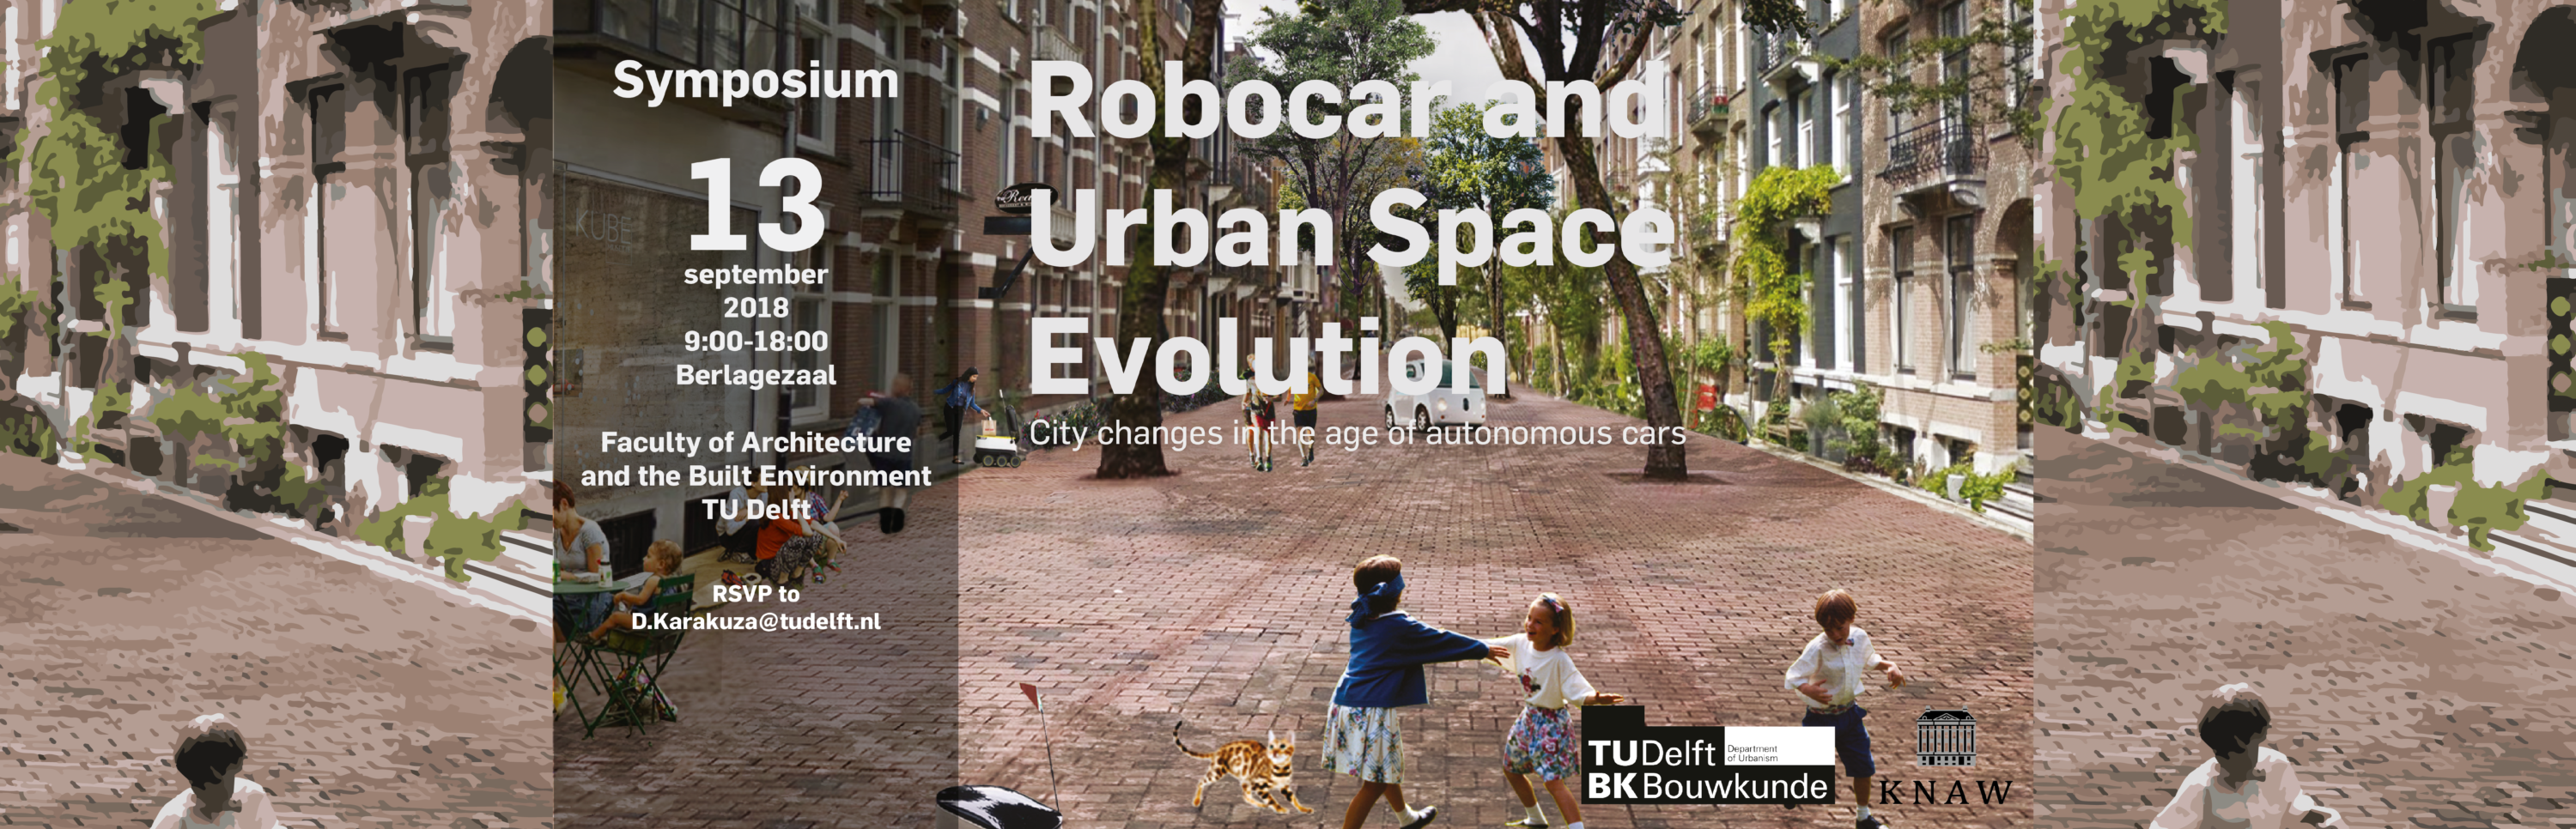 Symposium: Robocar and Urban Space Evolution